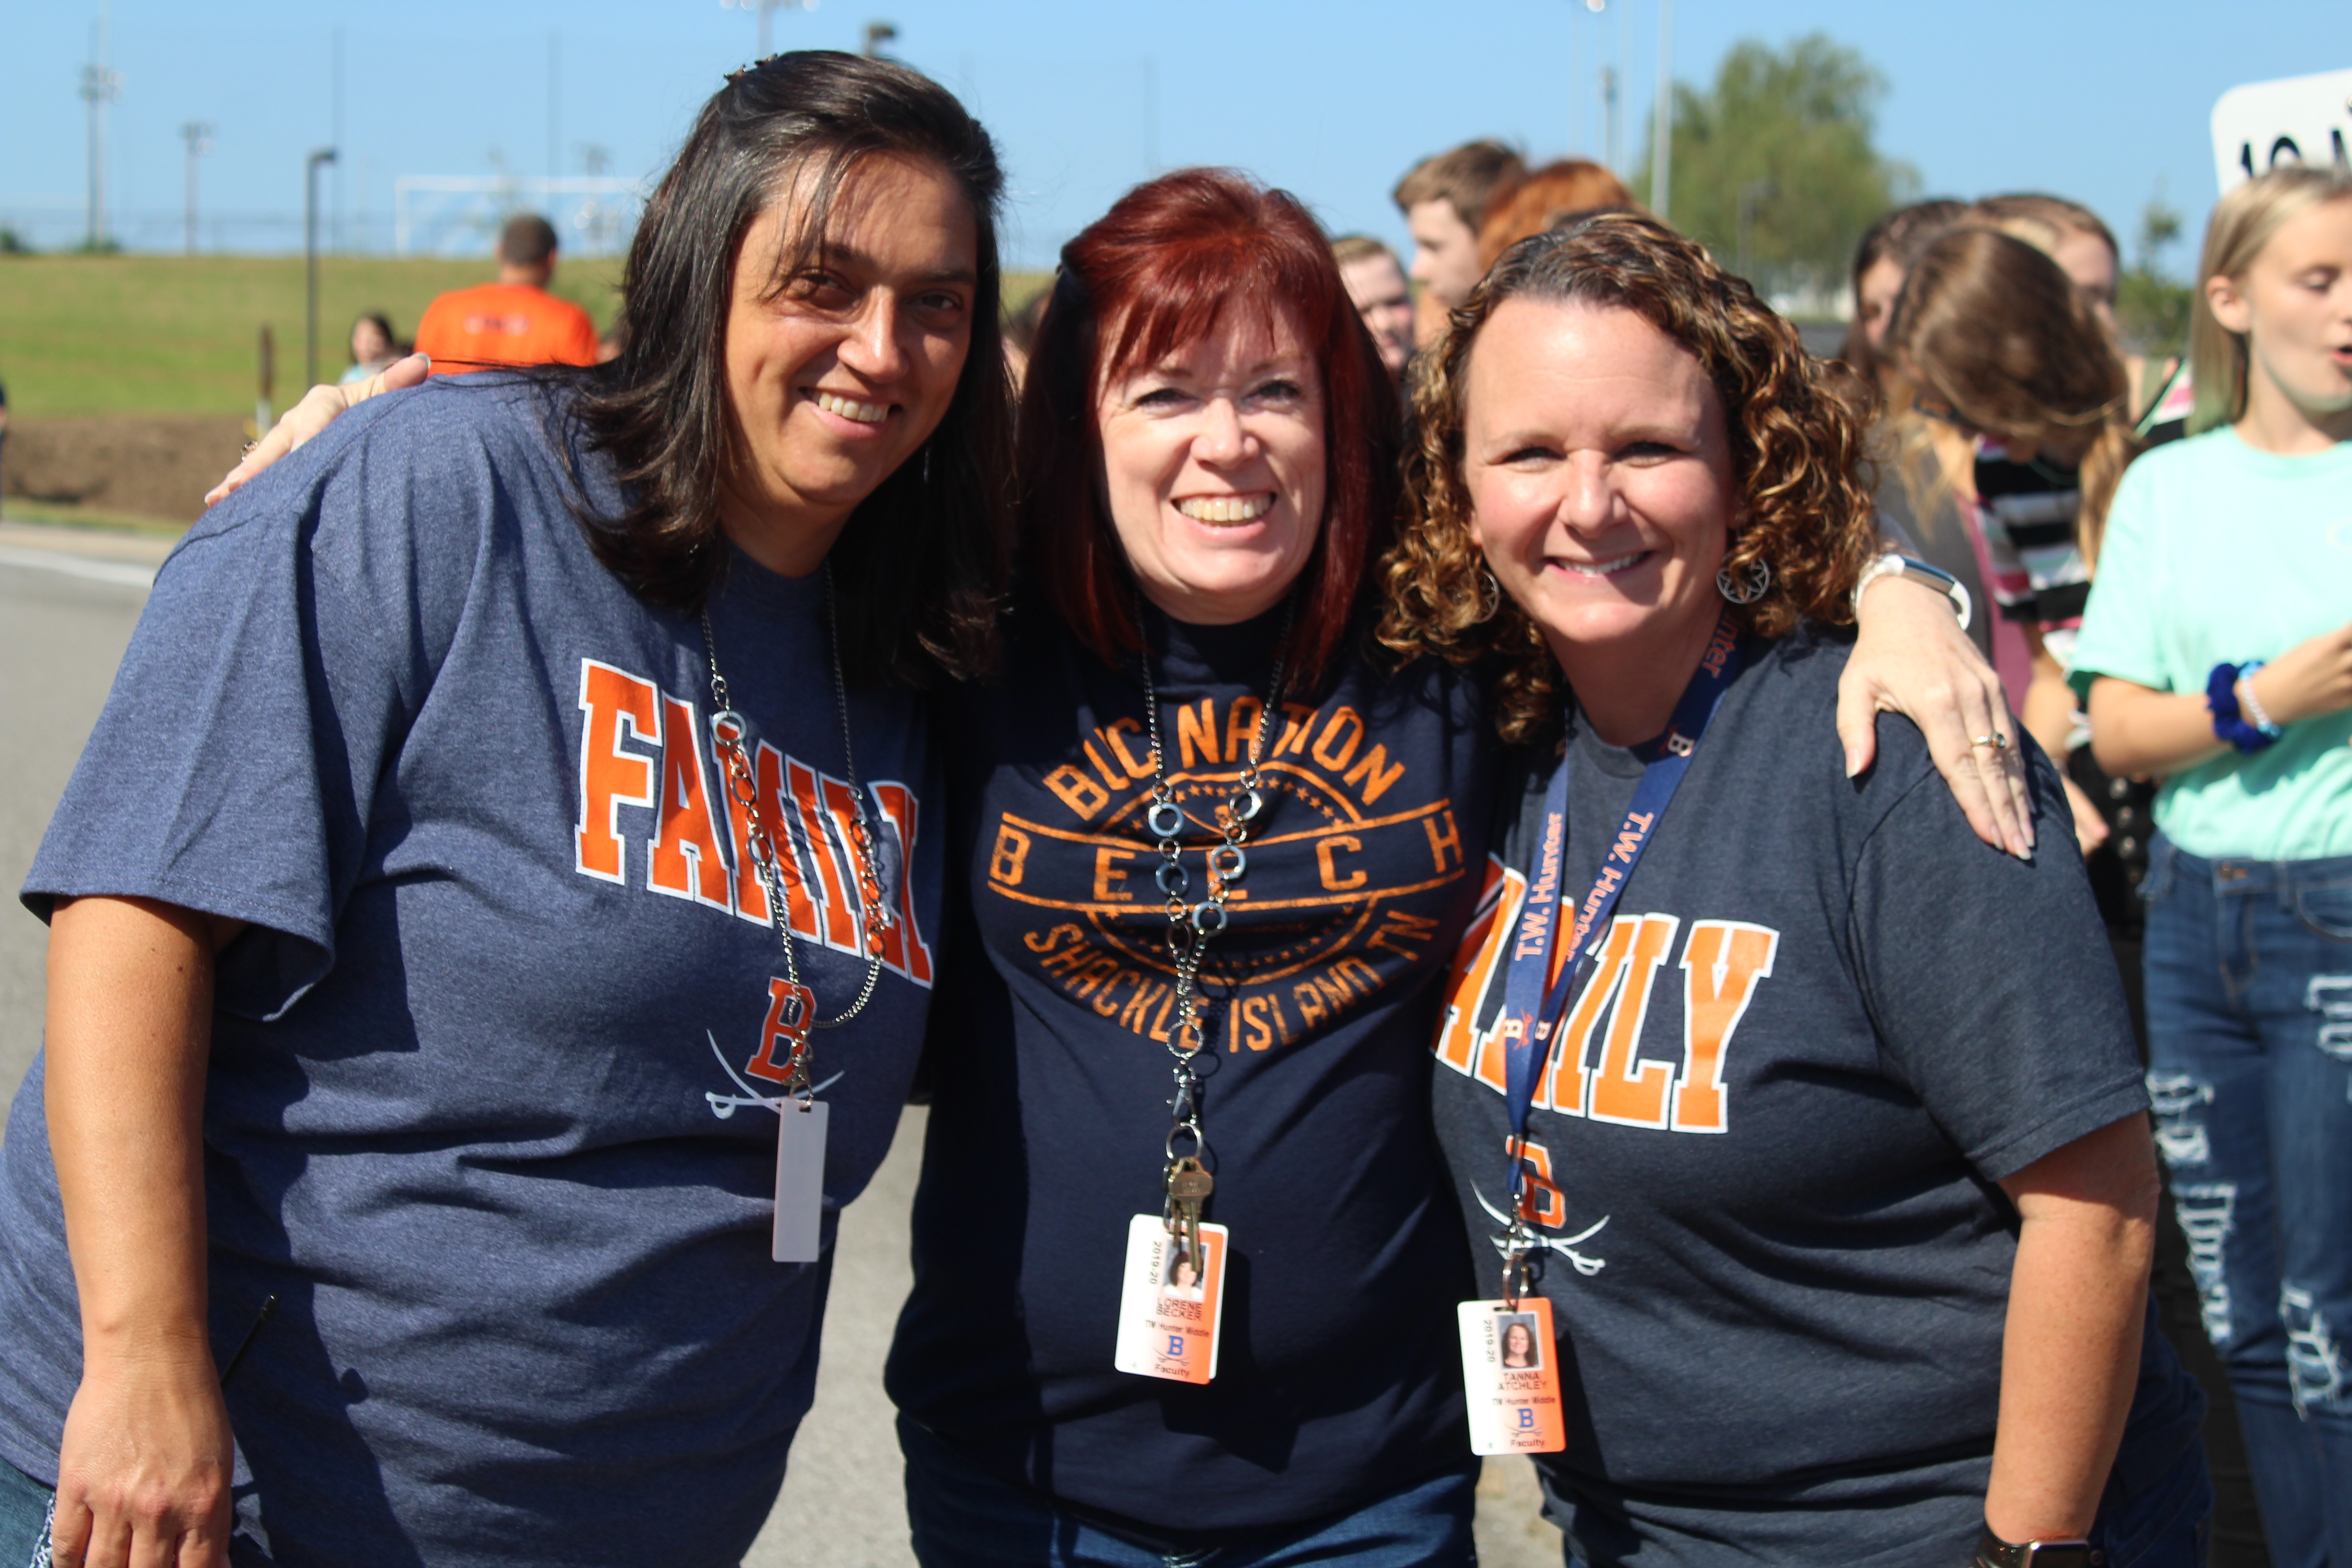 Teachers celebrate homecoming at the parade.